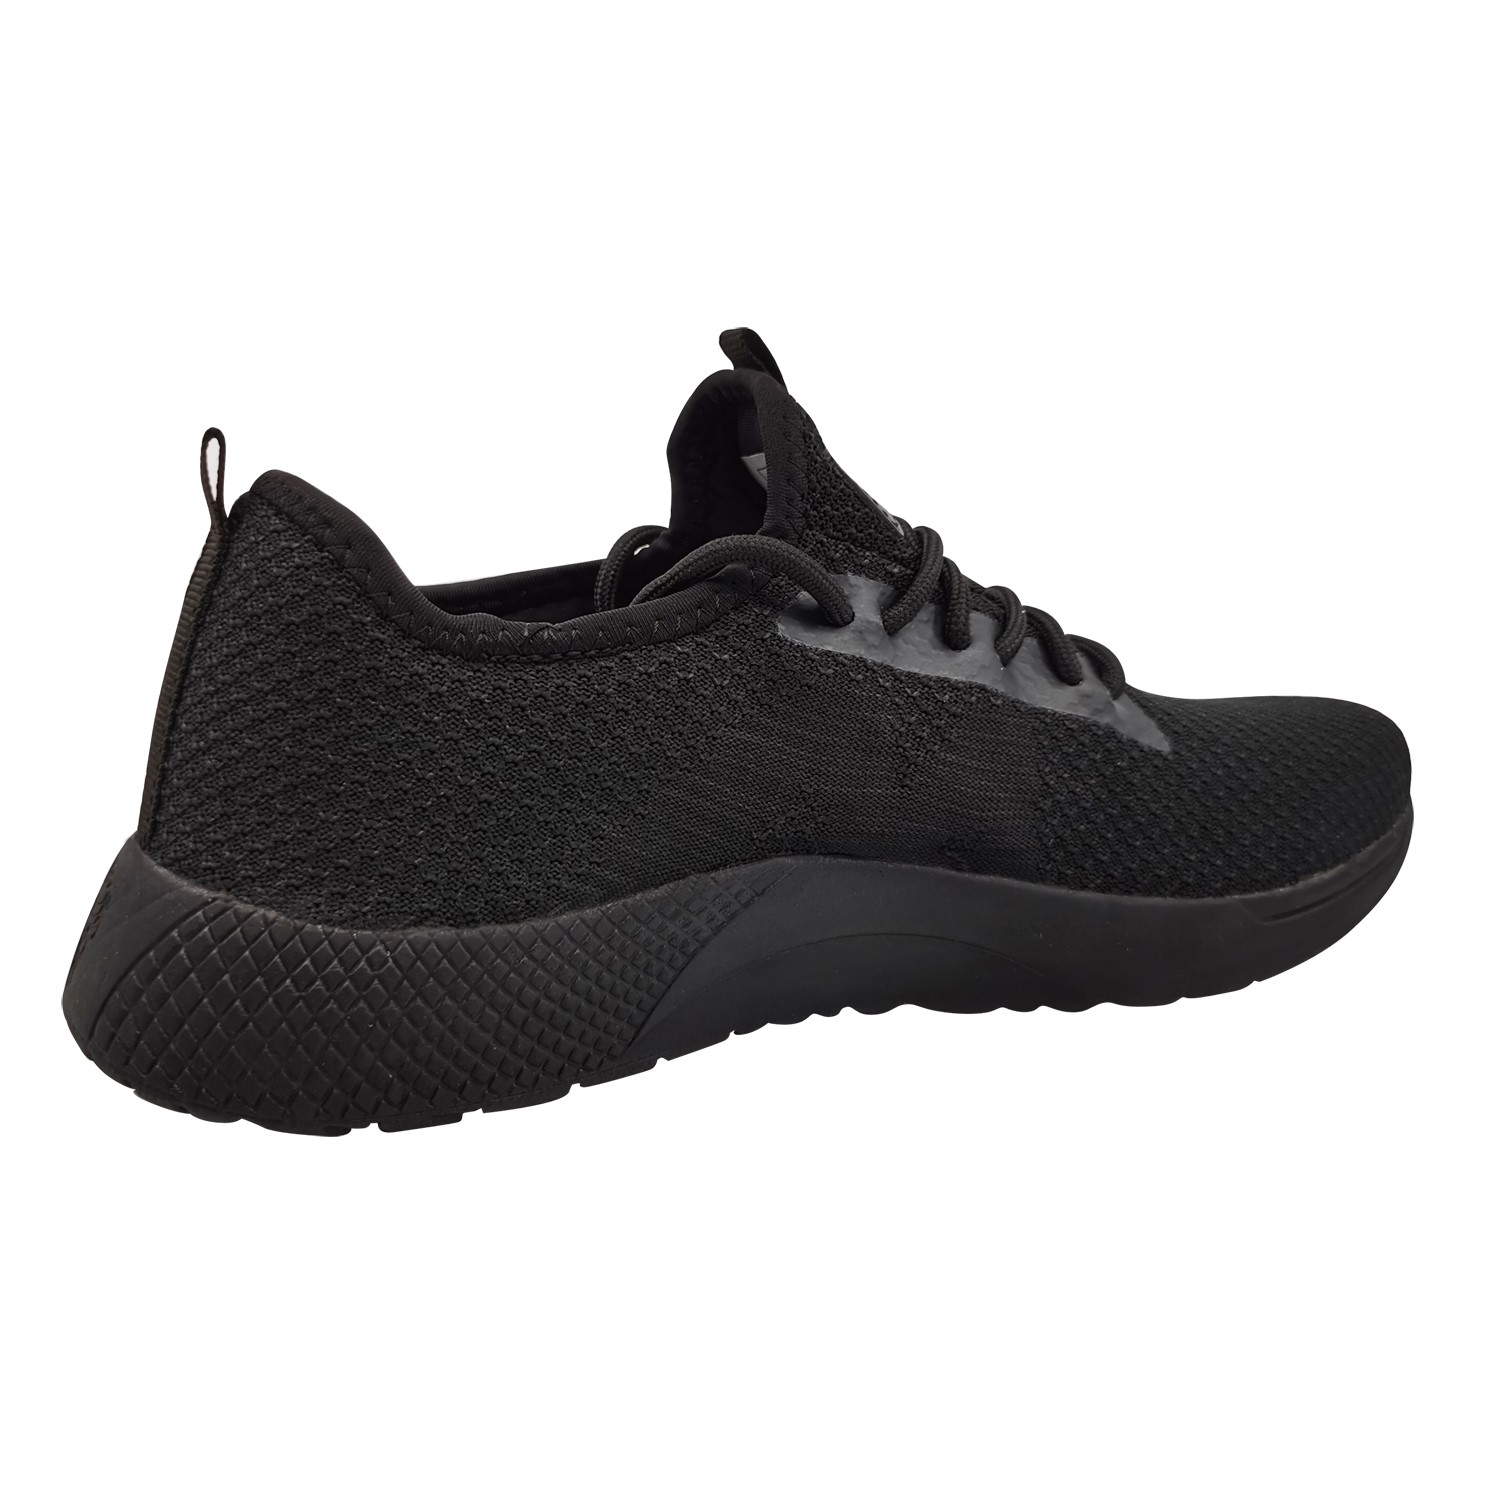 Zapatillas de Mujer Michelin Footwear Country Rock negro